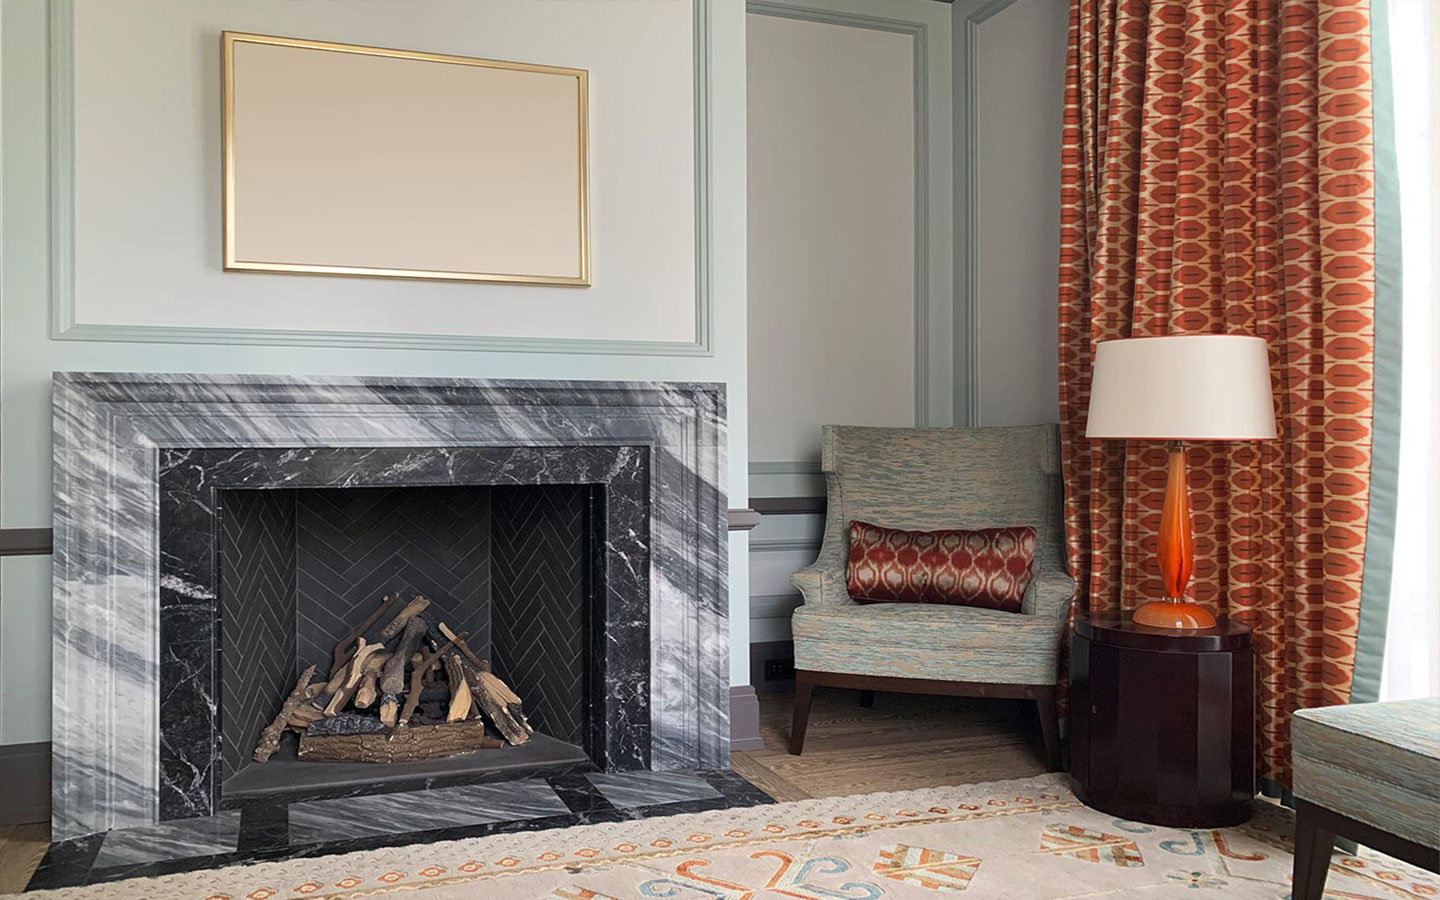 Custom-made marble fireplace, supplied and installed by M&G Ltd – Private residential